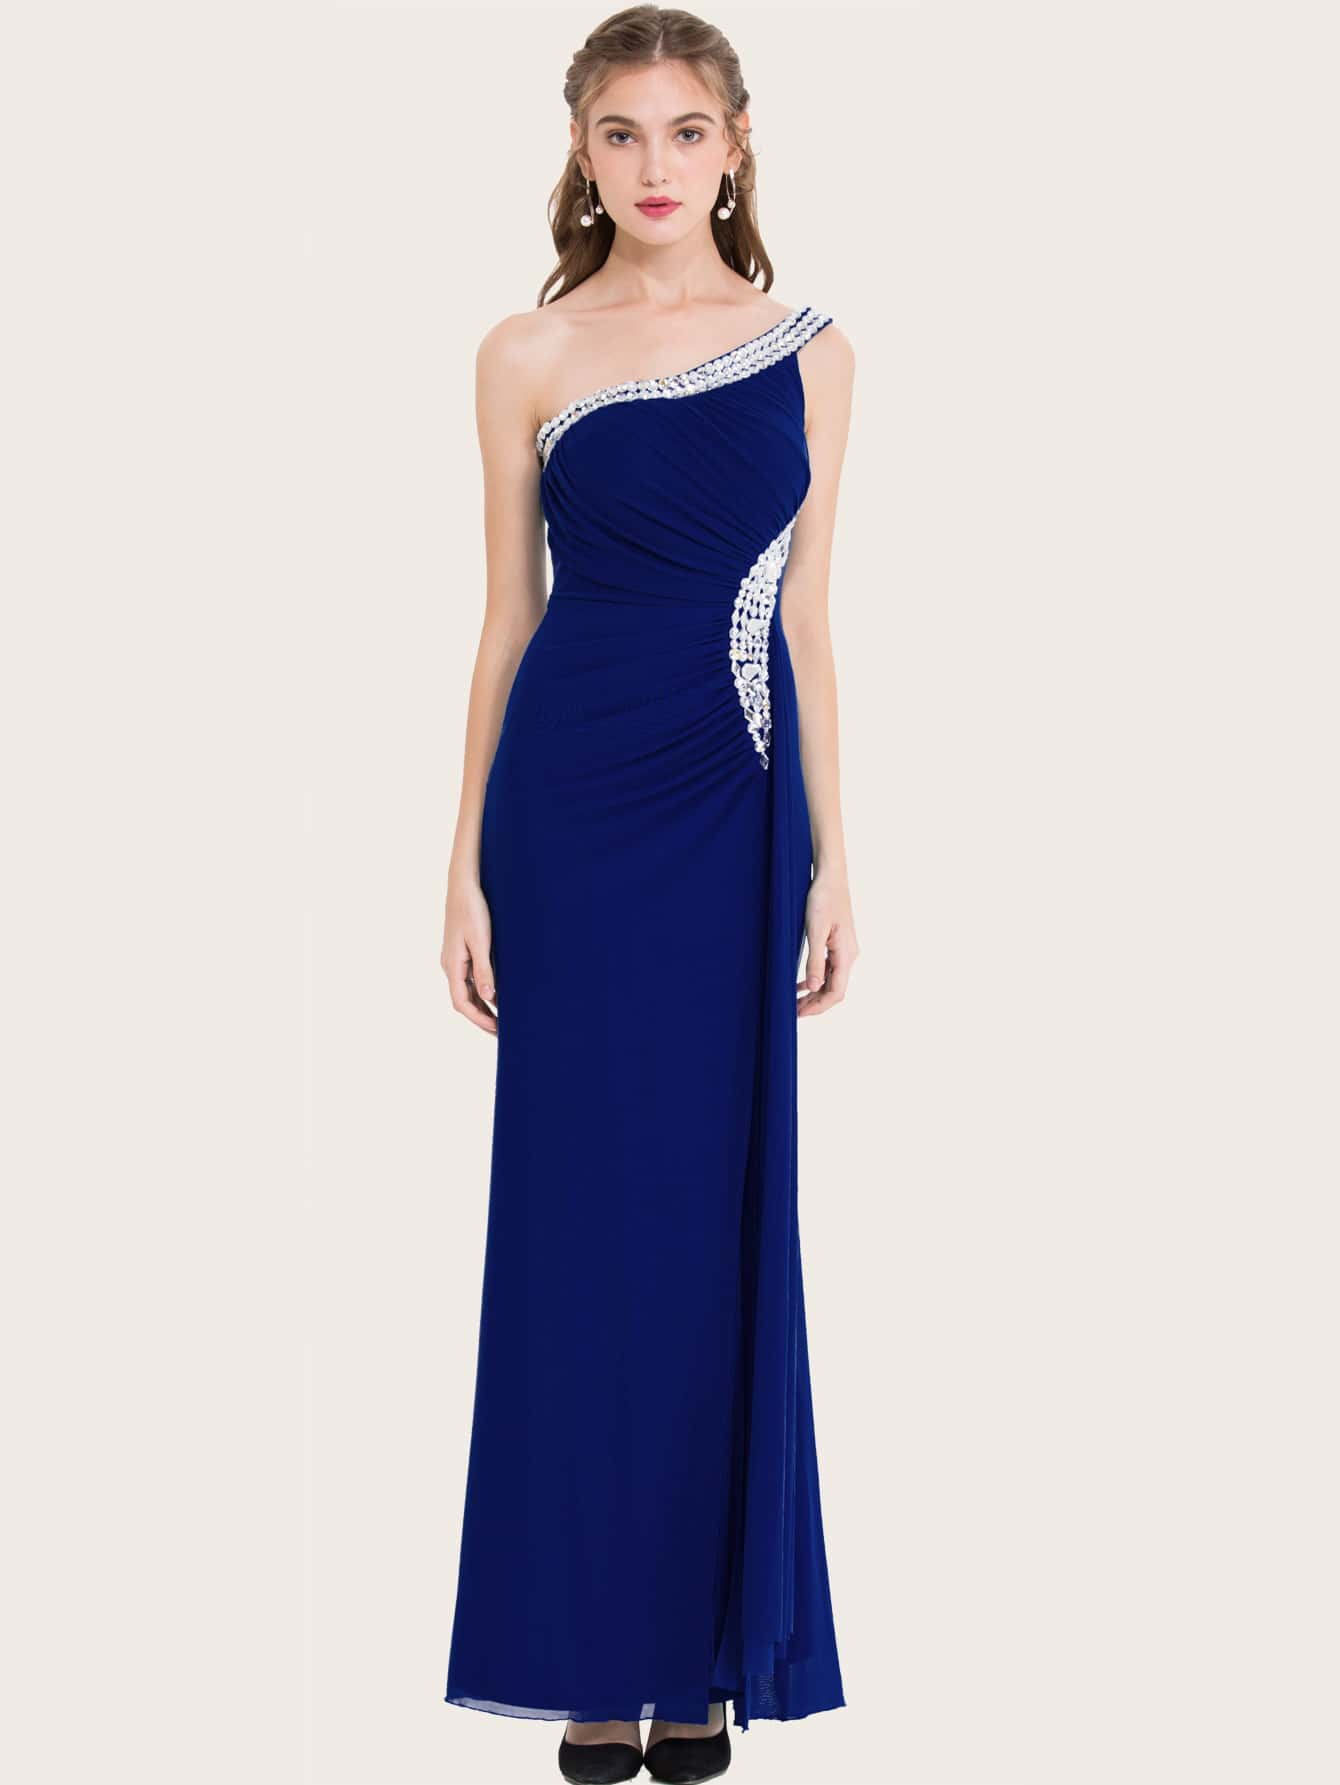 One Shoulder Draped Rhinestone Prom Dress thumbnail